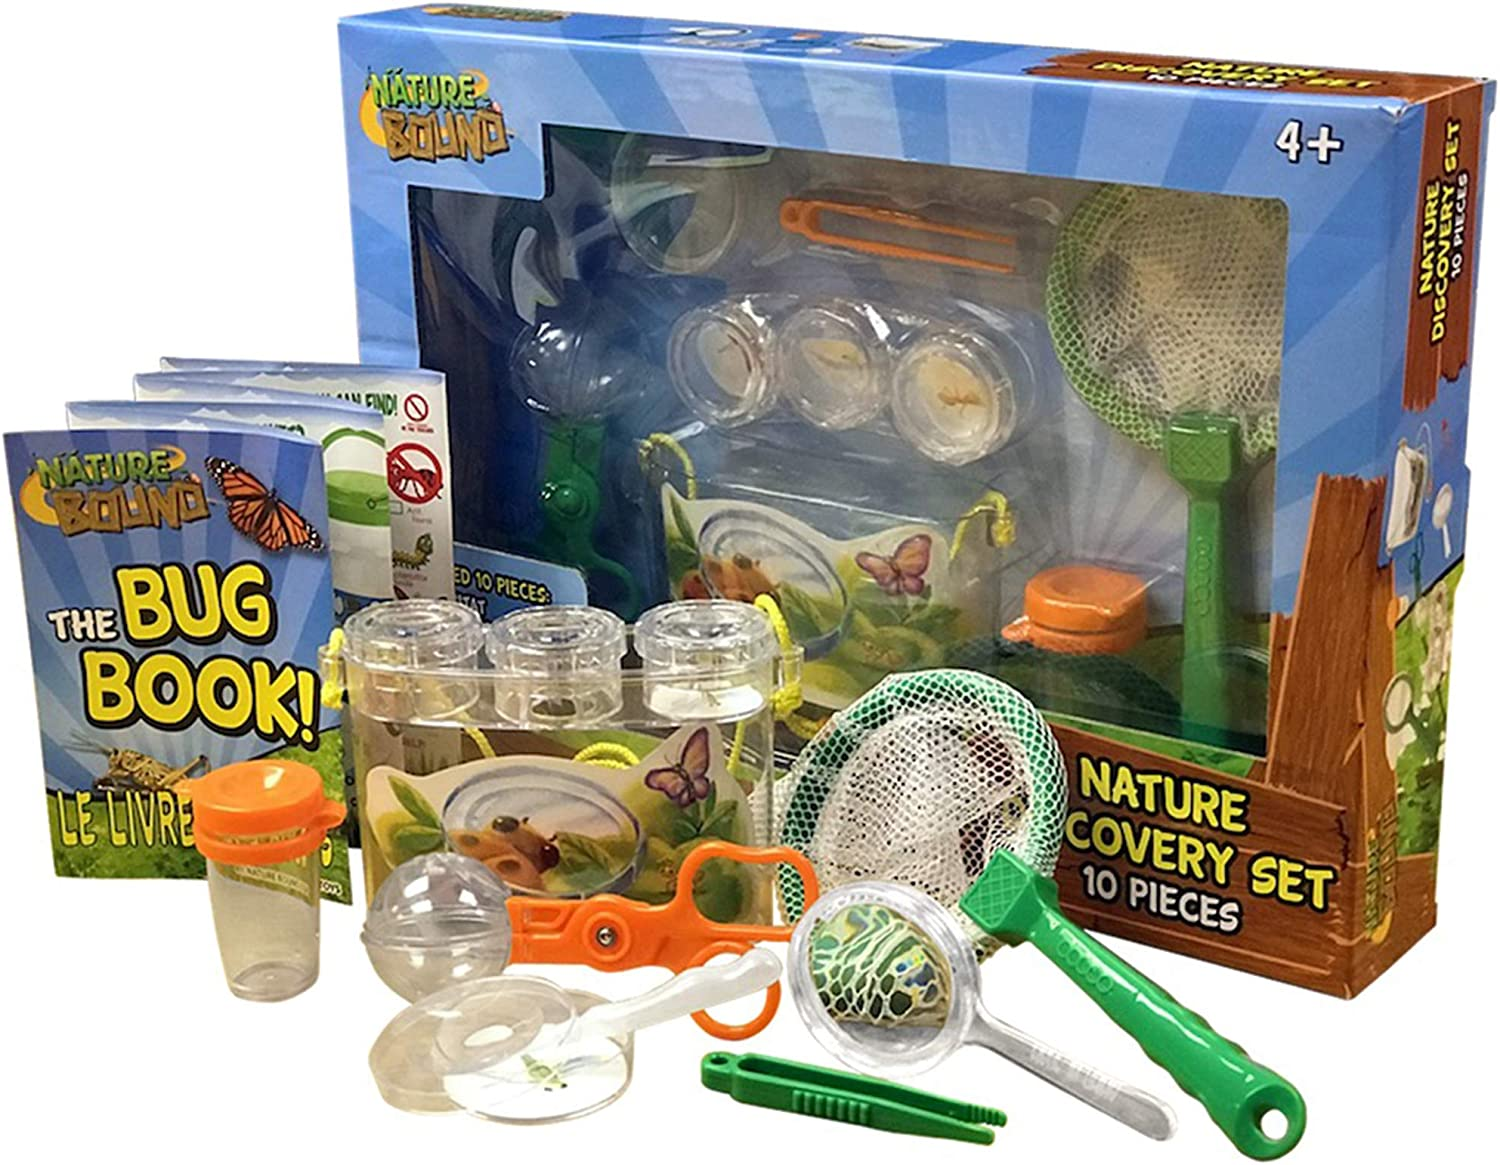 Nature Bound Bug Catcher Kit 6 Piece Nature Exploration Set with Habitat, Net, Book, Tweezers, Petri Dish, Bottle, and Magnifier Toy for Boys and Girls of All Ages Packaged in Gift Box (NB522)